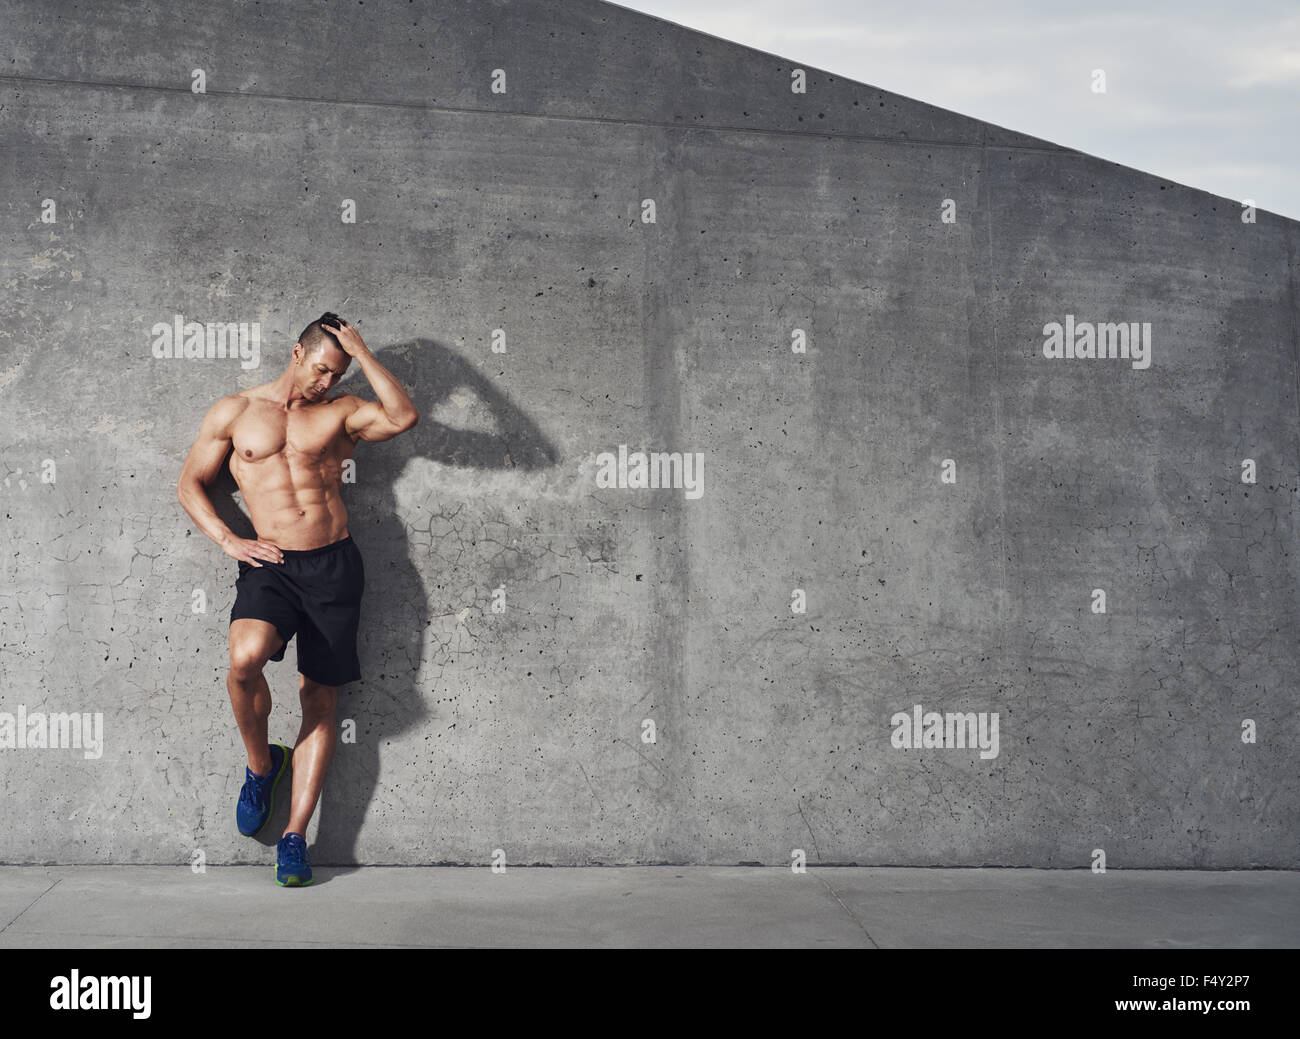 Fit and healthy male fitness model portrait, standing against wall looking down, room for copy space. - Stock Image